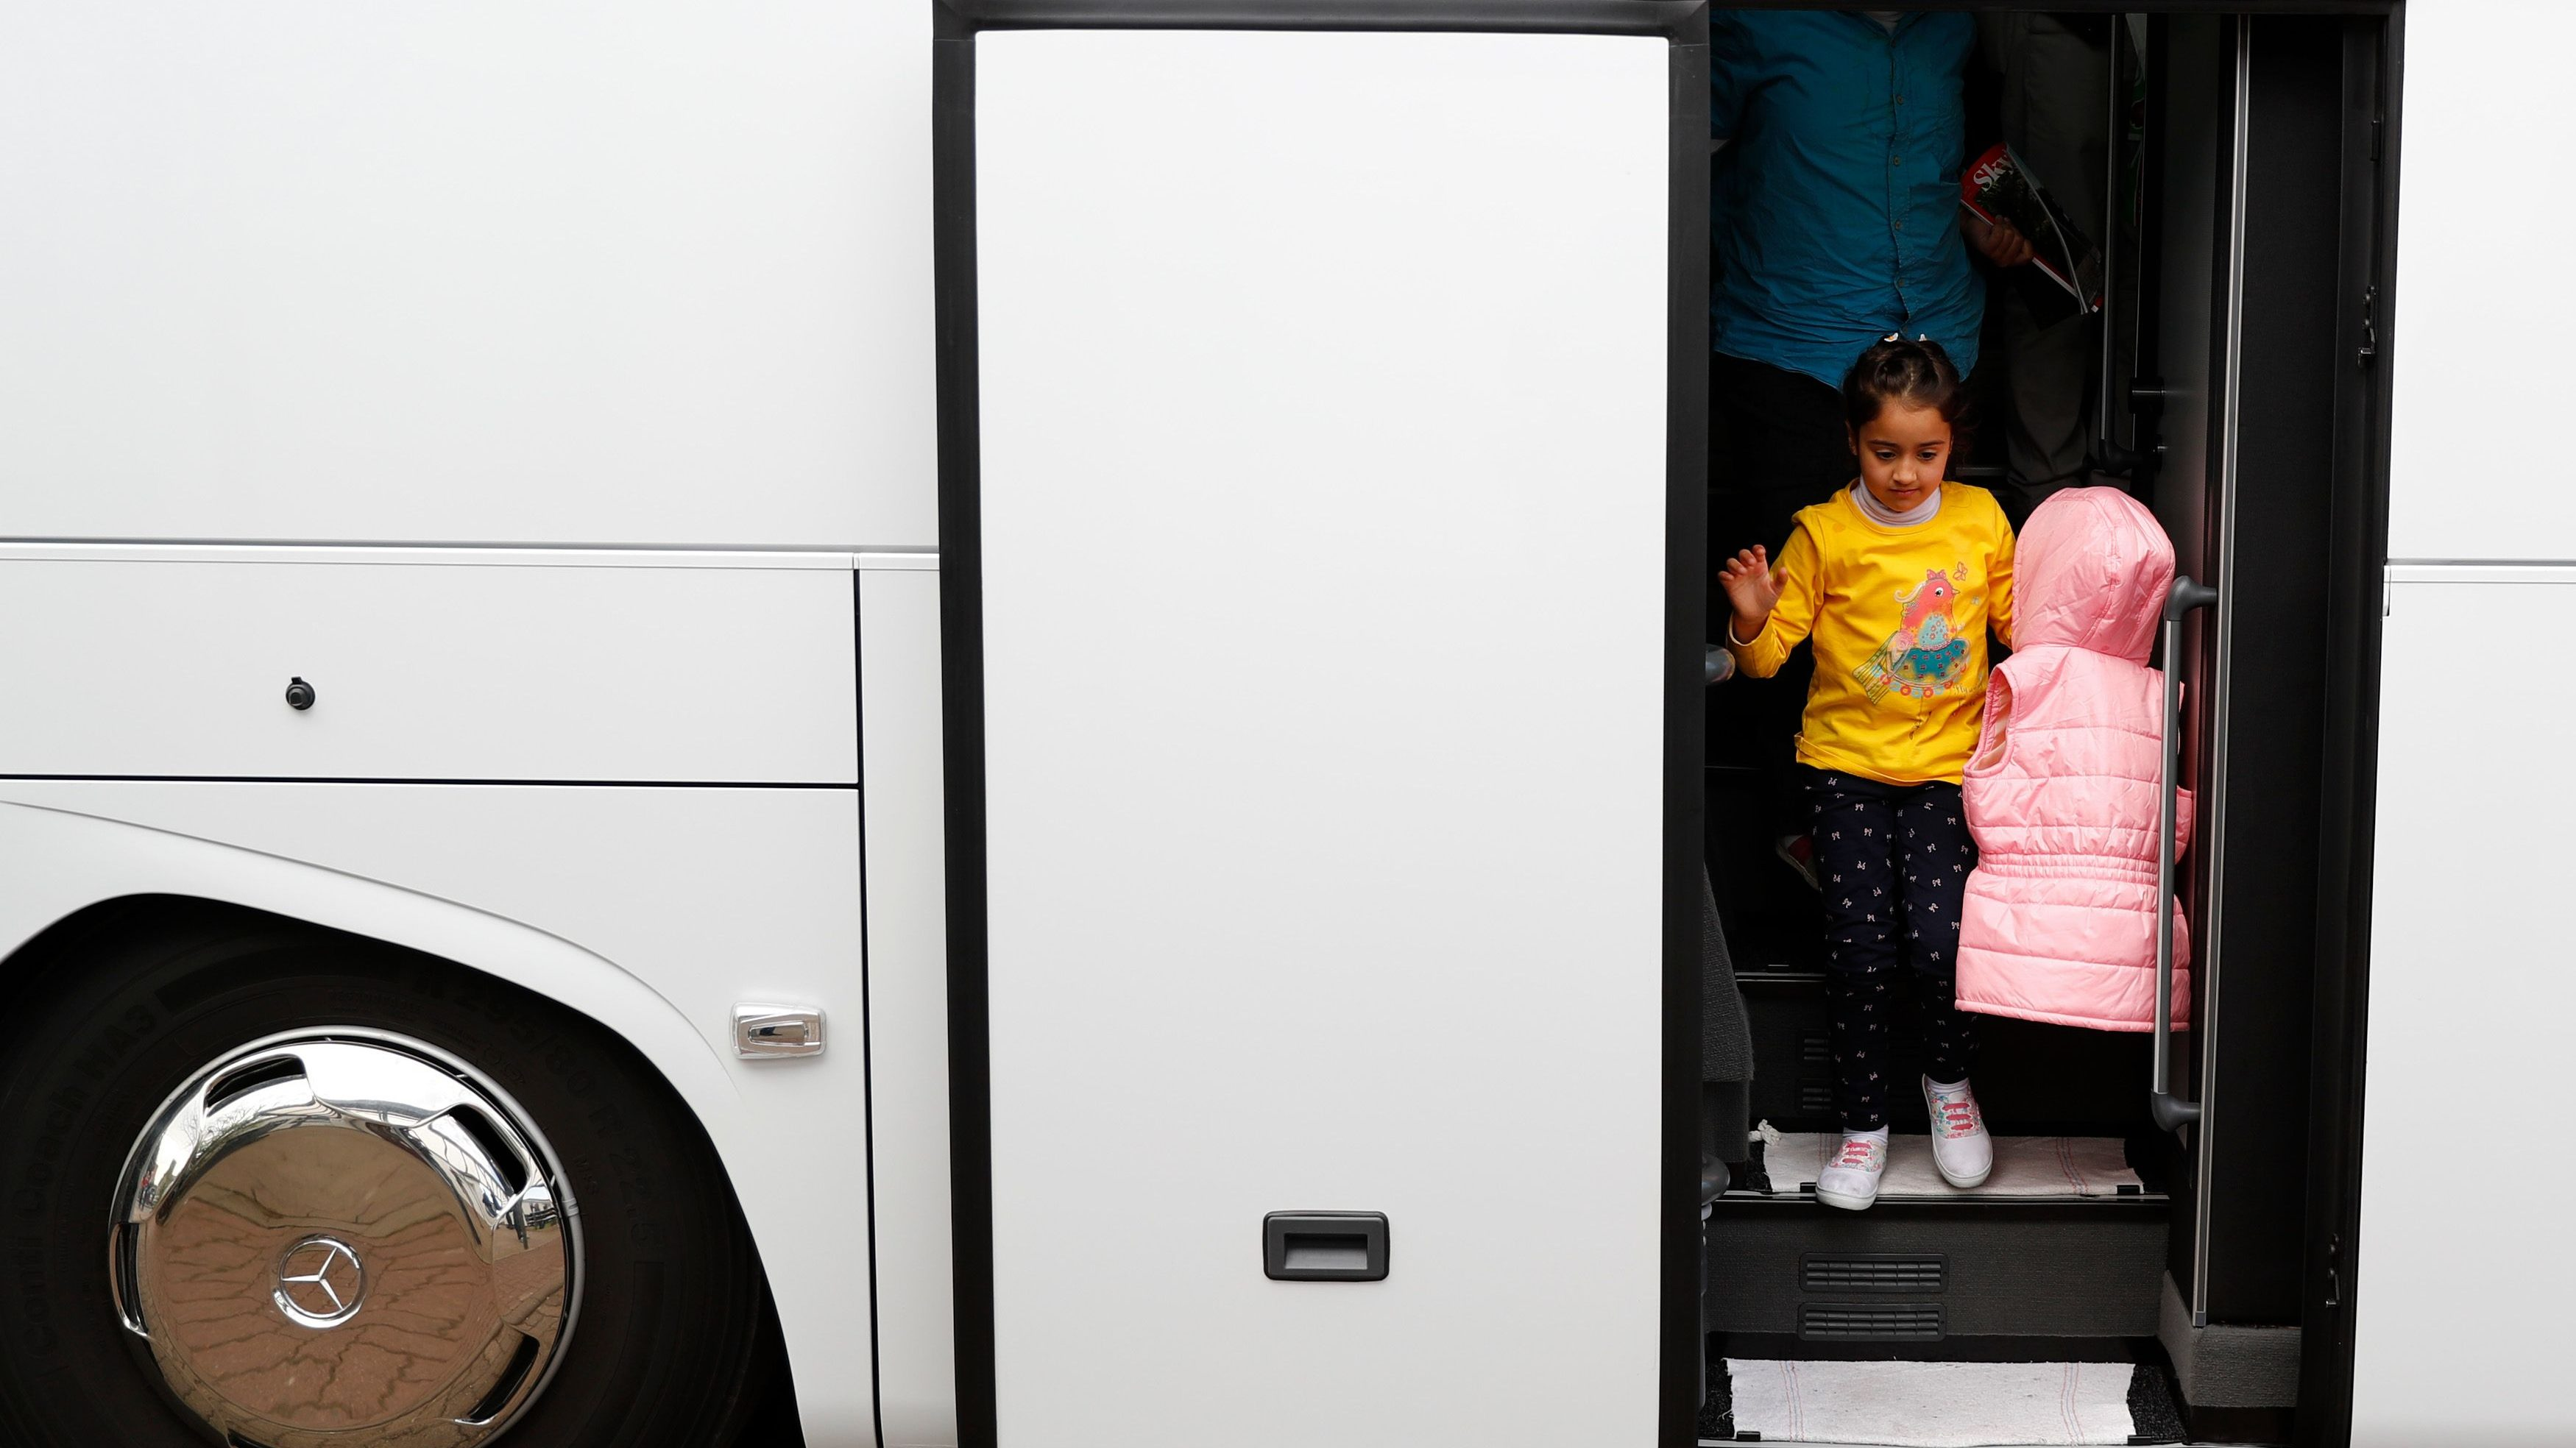 Syrian refugees disembark from a bus on arrival at the camp for refugees and migrants in Germany